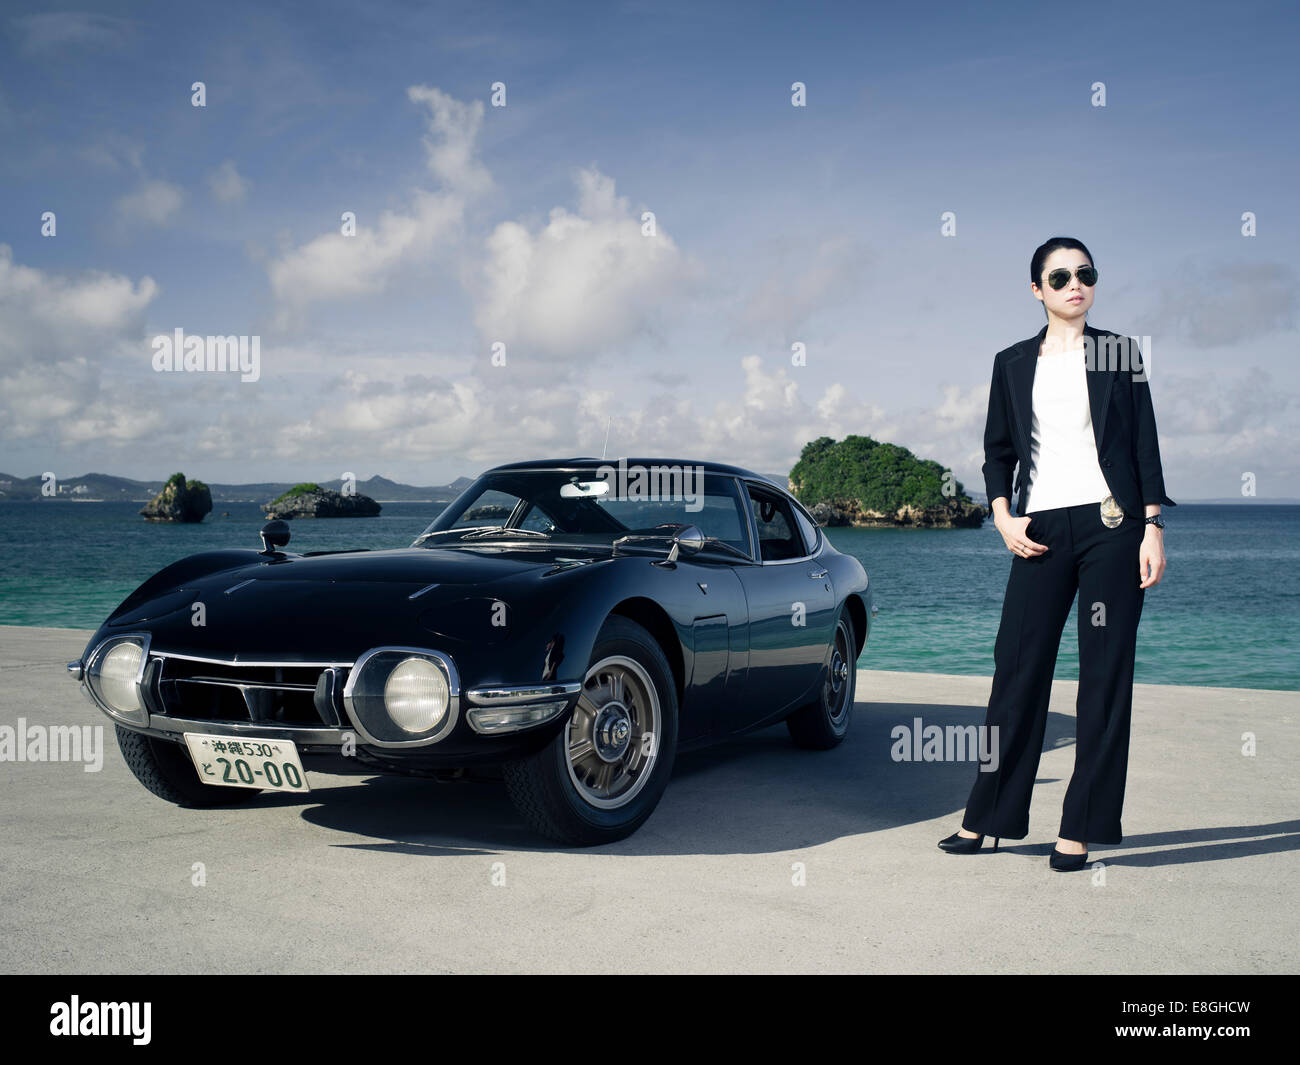 Detective With Lhd Toyota 2000gt Japanese Sports Car In Okinawa